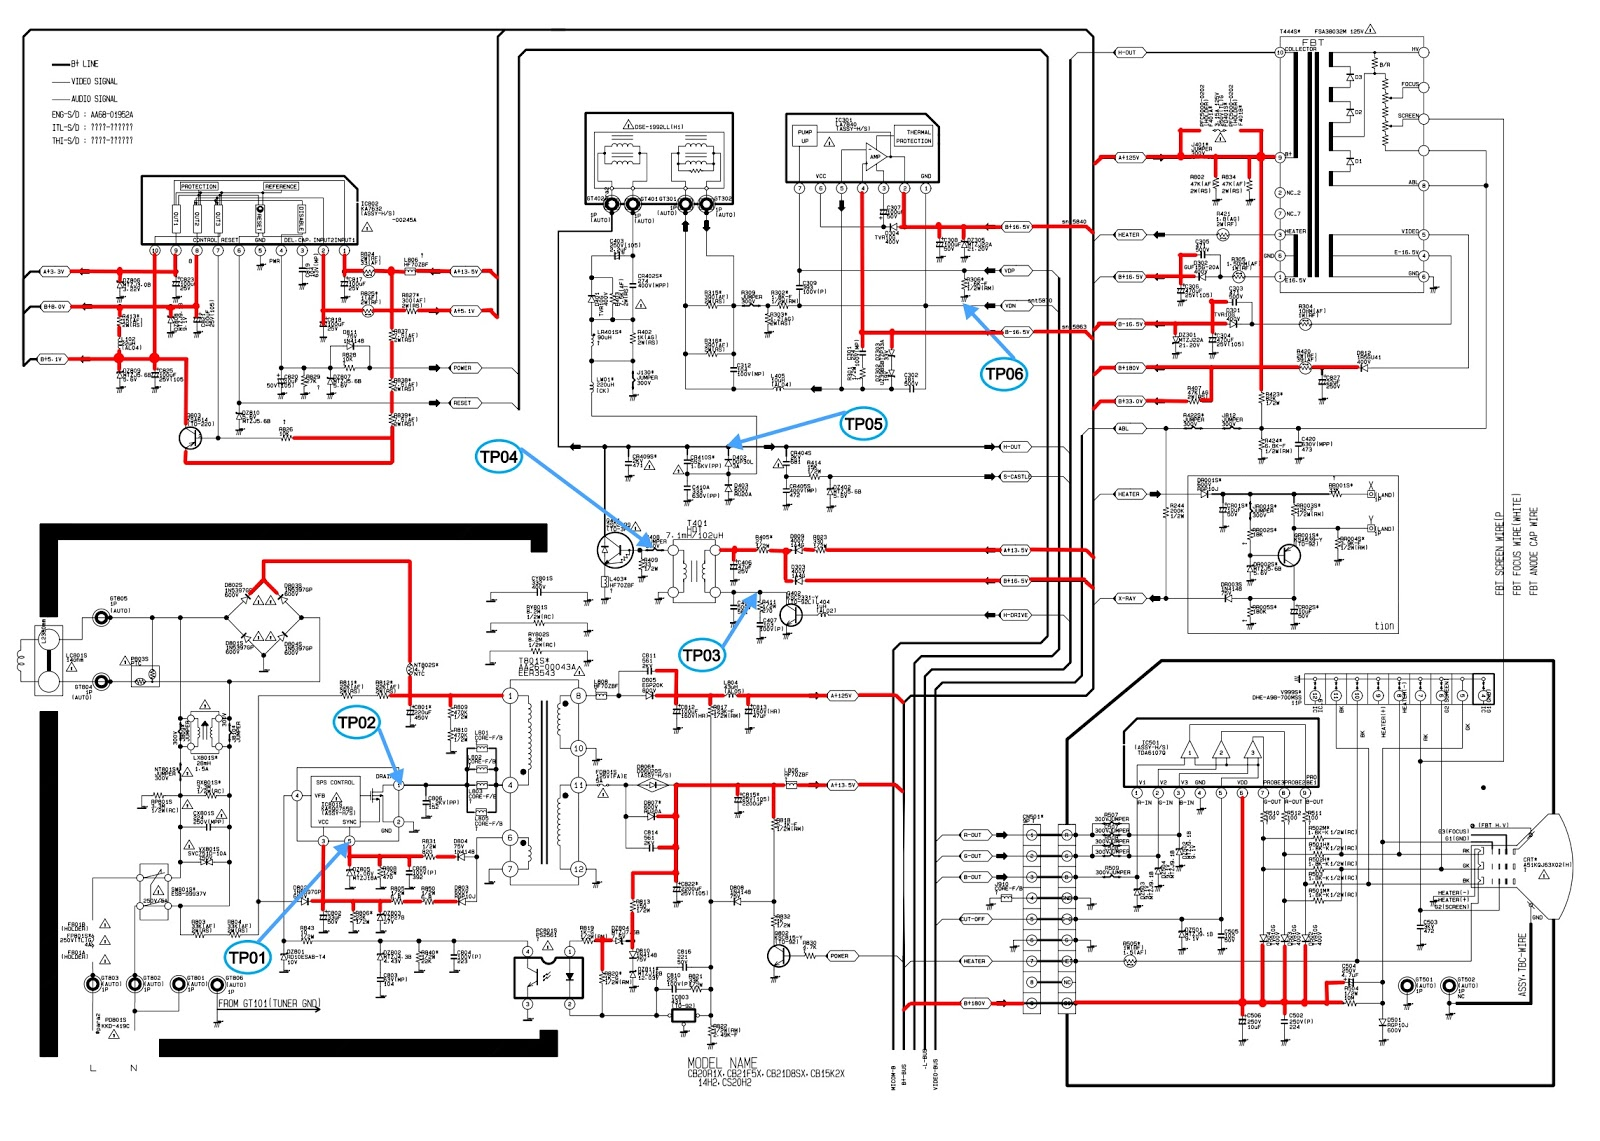 cd9 t v circuit diagram | wiring resources  wiring resources